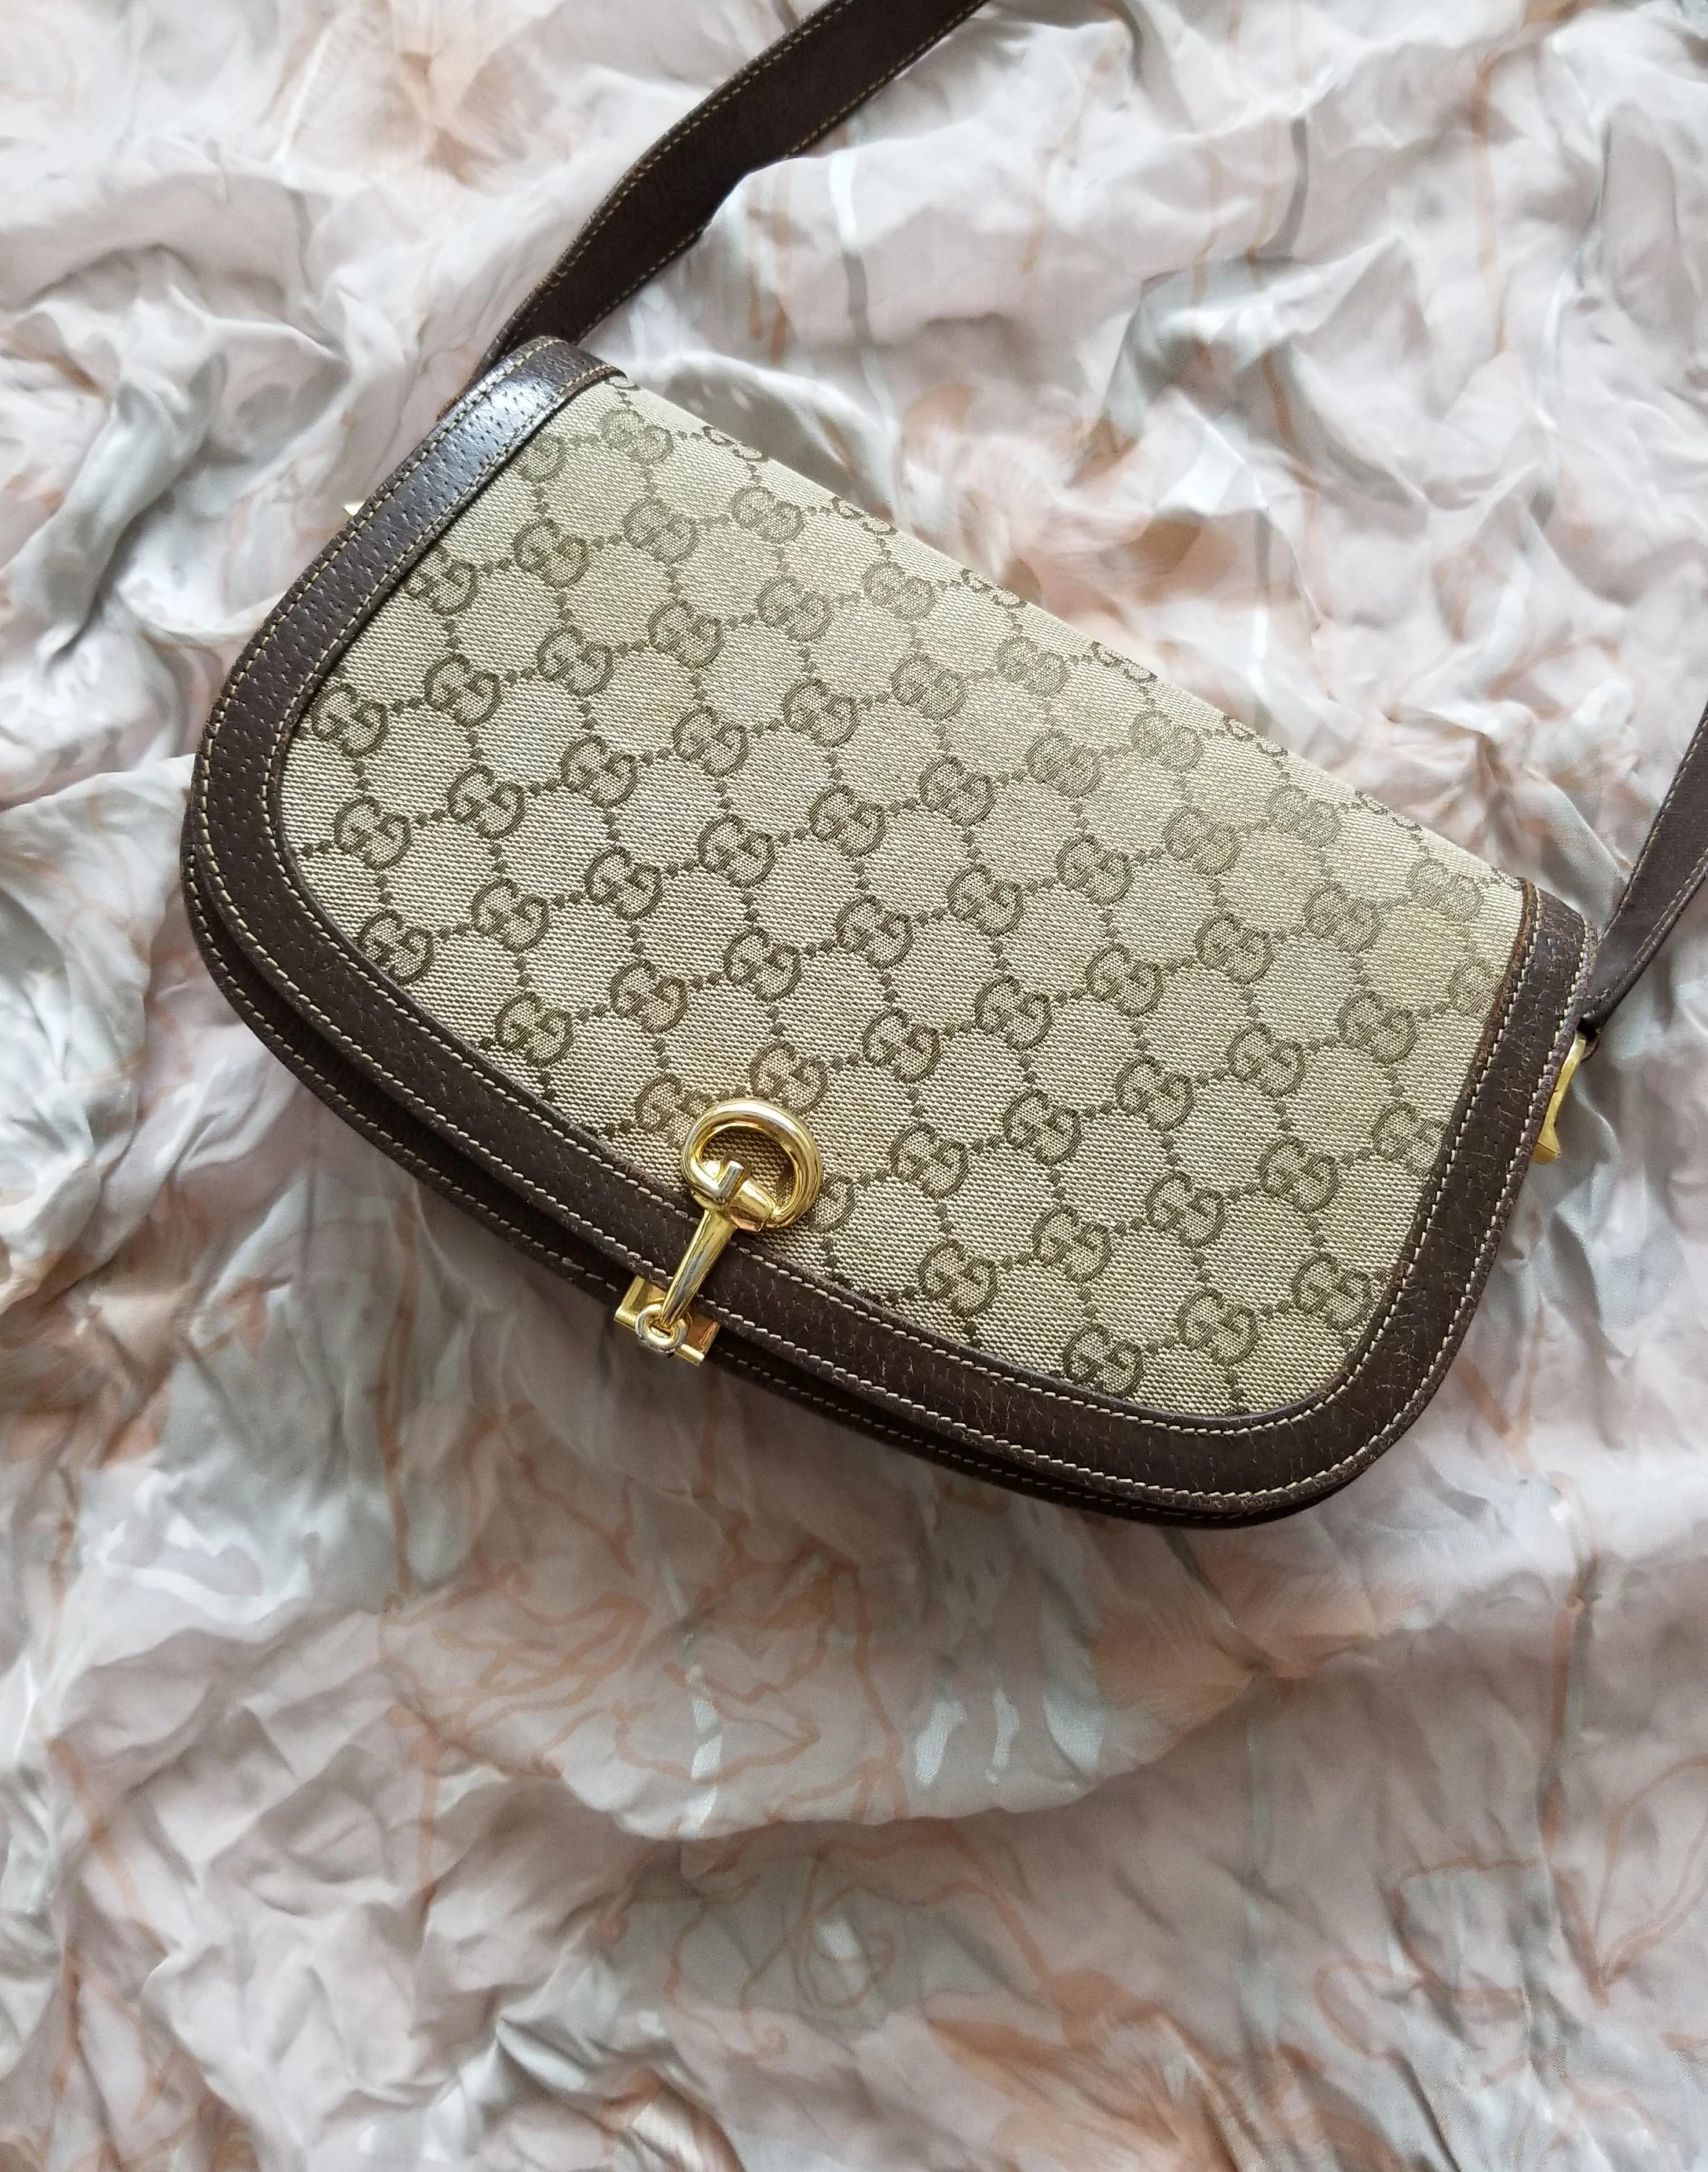 Etsy Vintage Gucci Vintage Gucci Monogram Saddle Bag